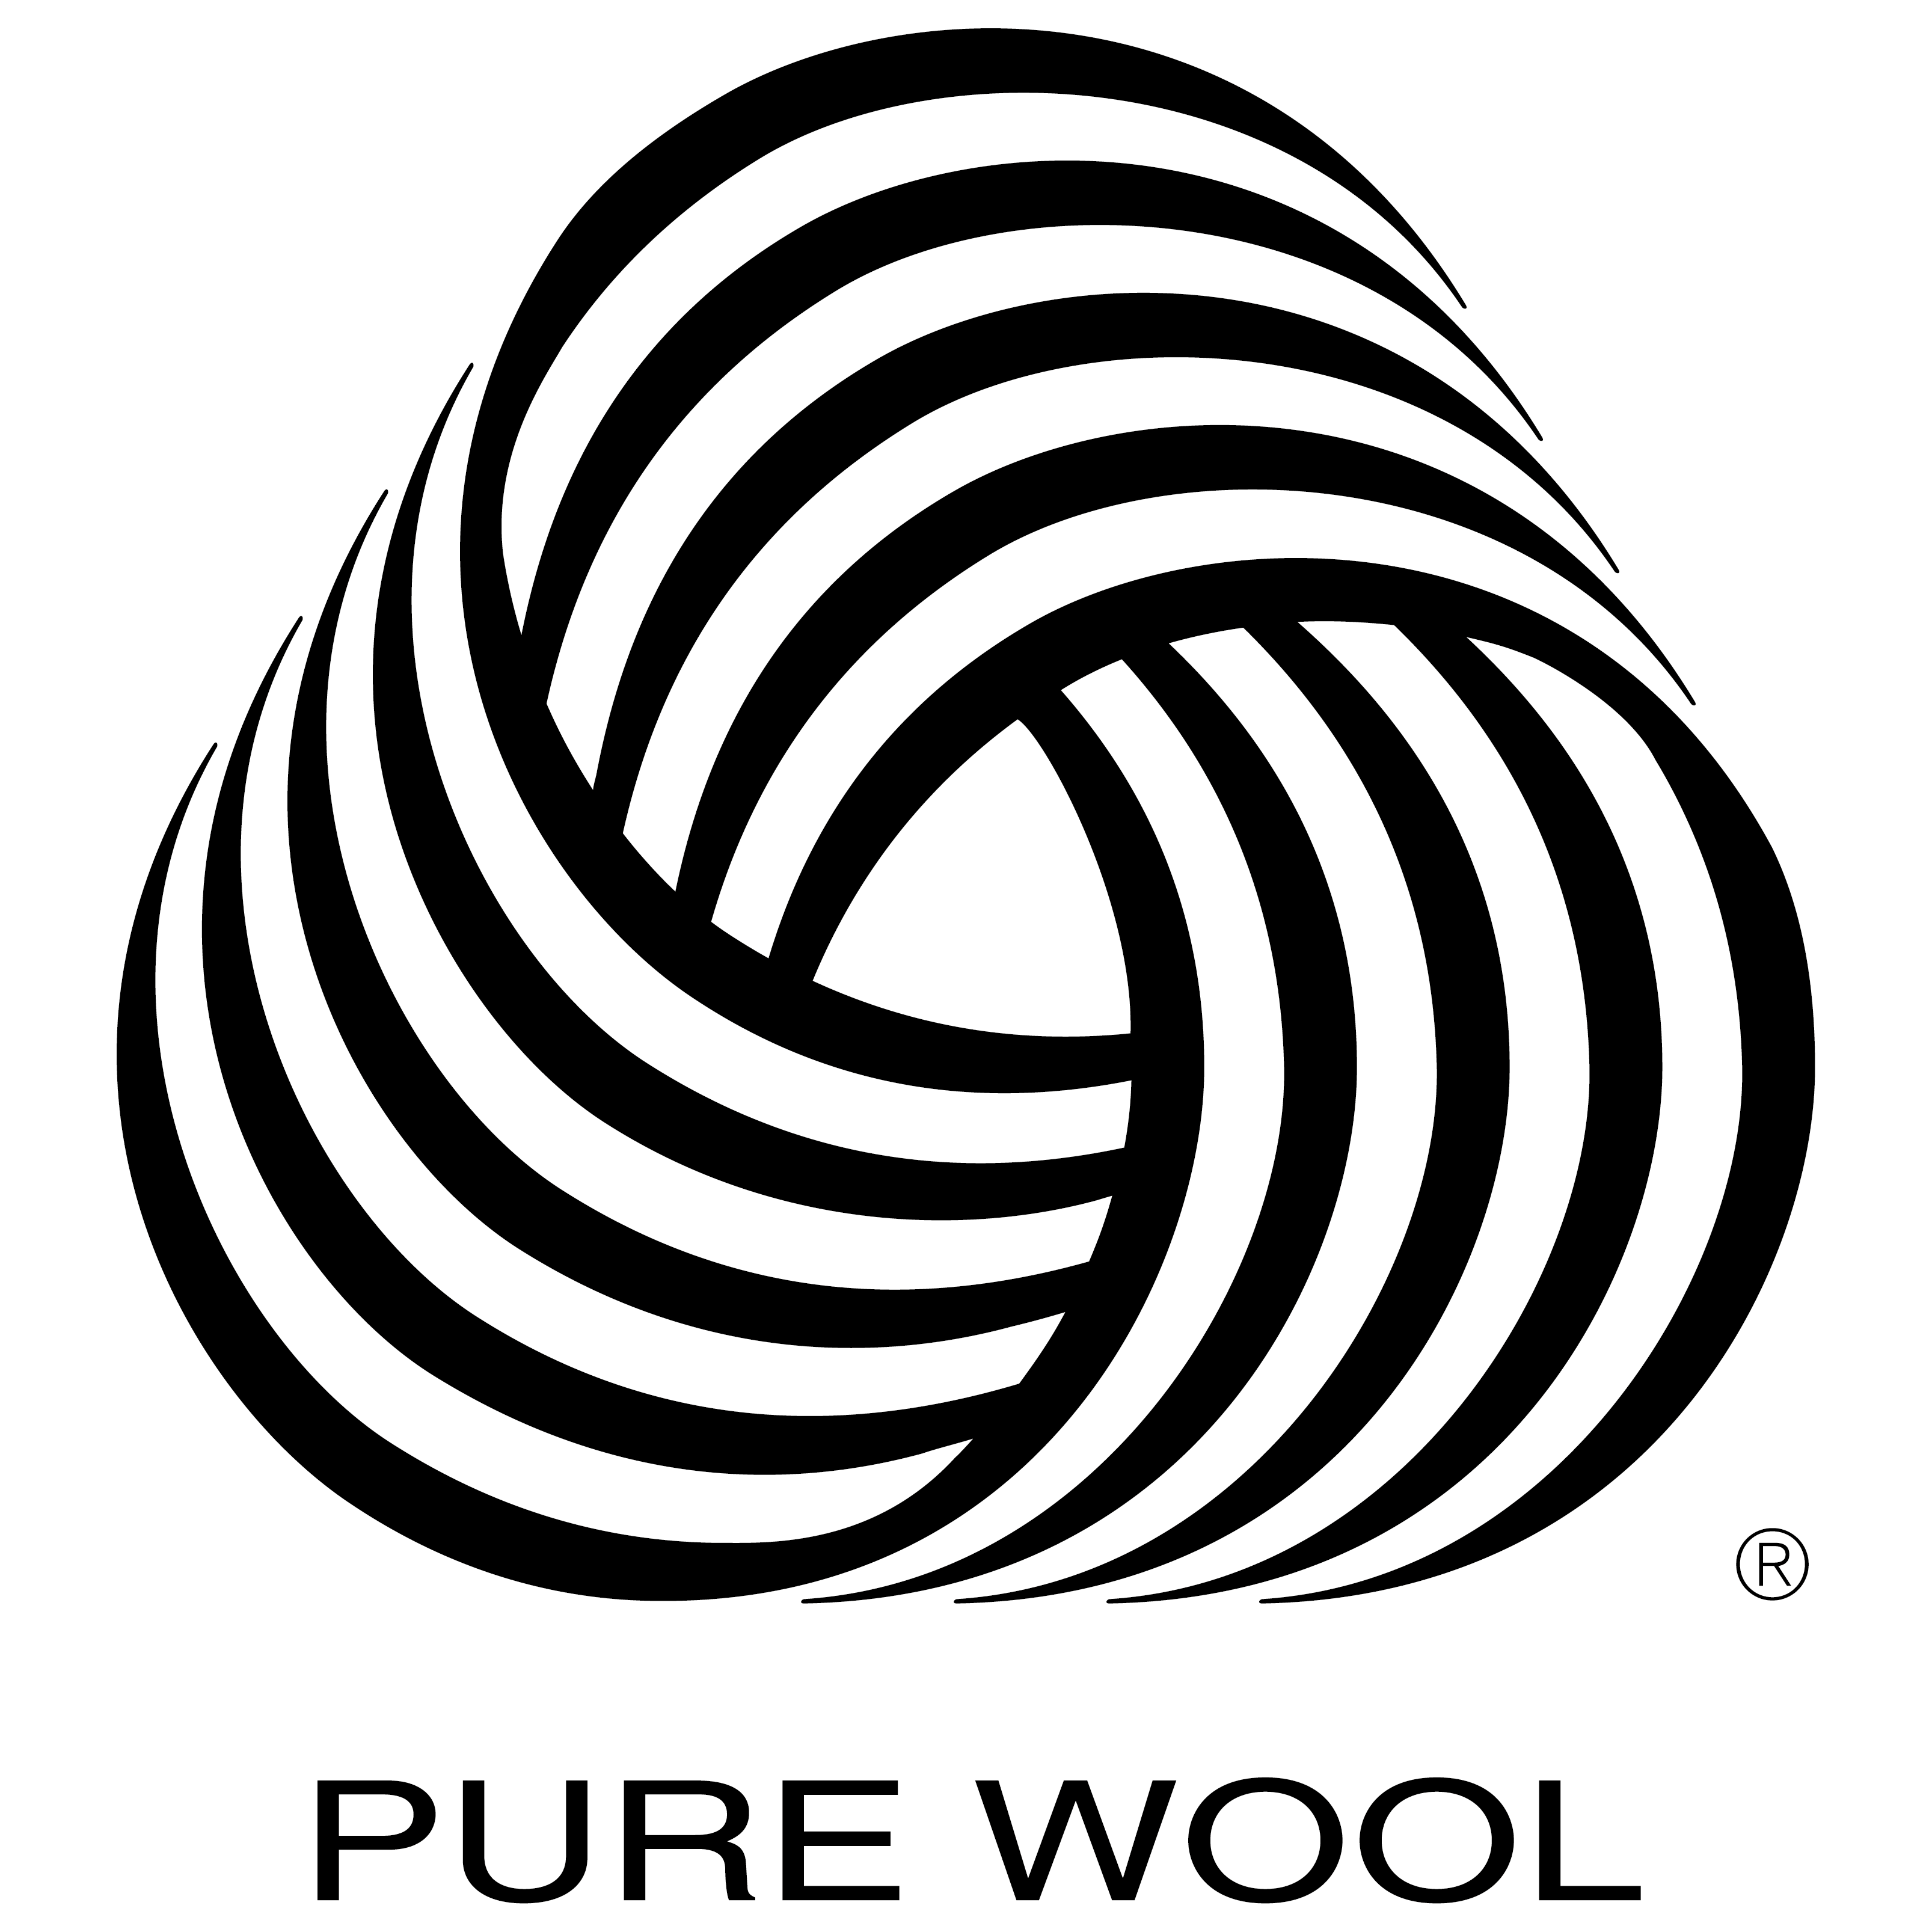 061_spec_symbol_pure_wool